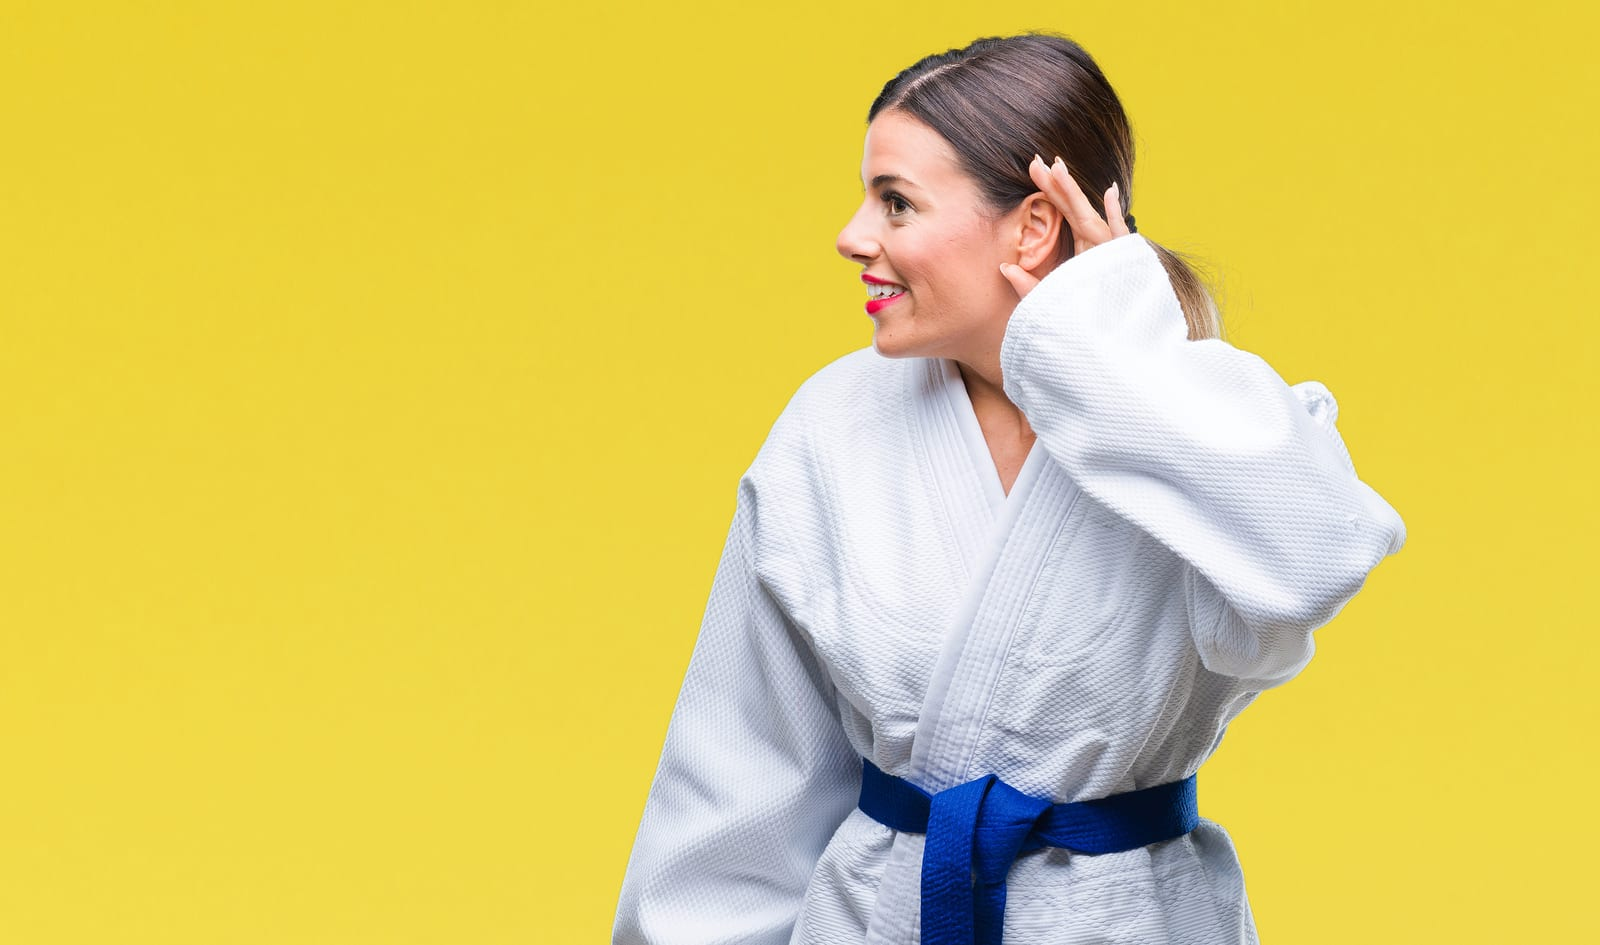 Woman wearing karate kimono uniform over isolated background smiling with hand over ear listening